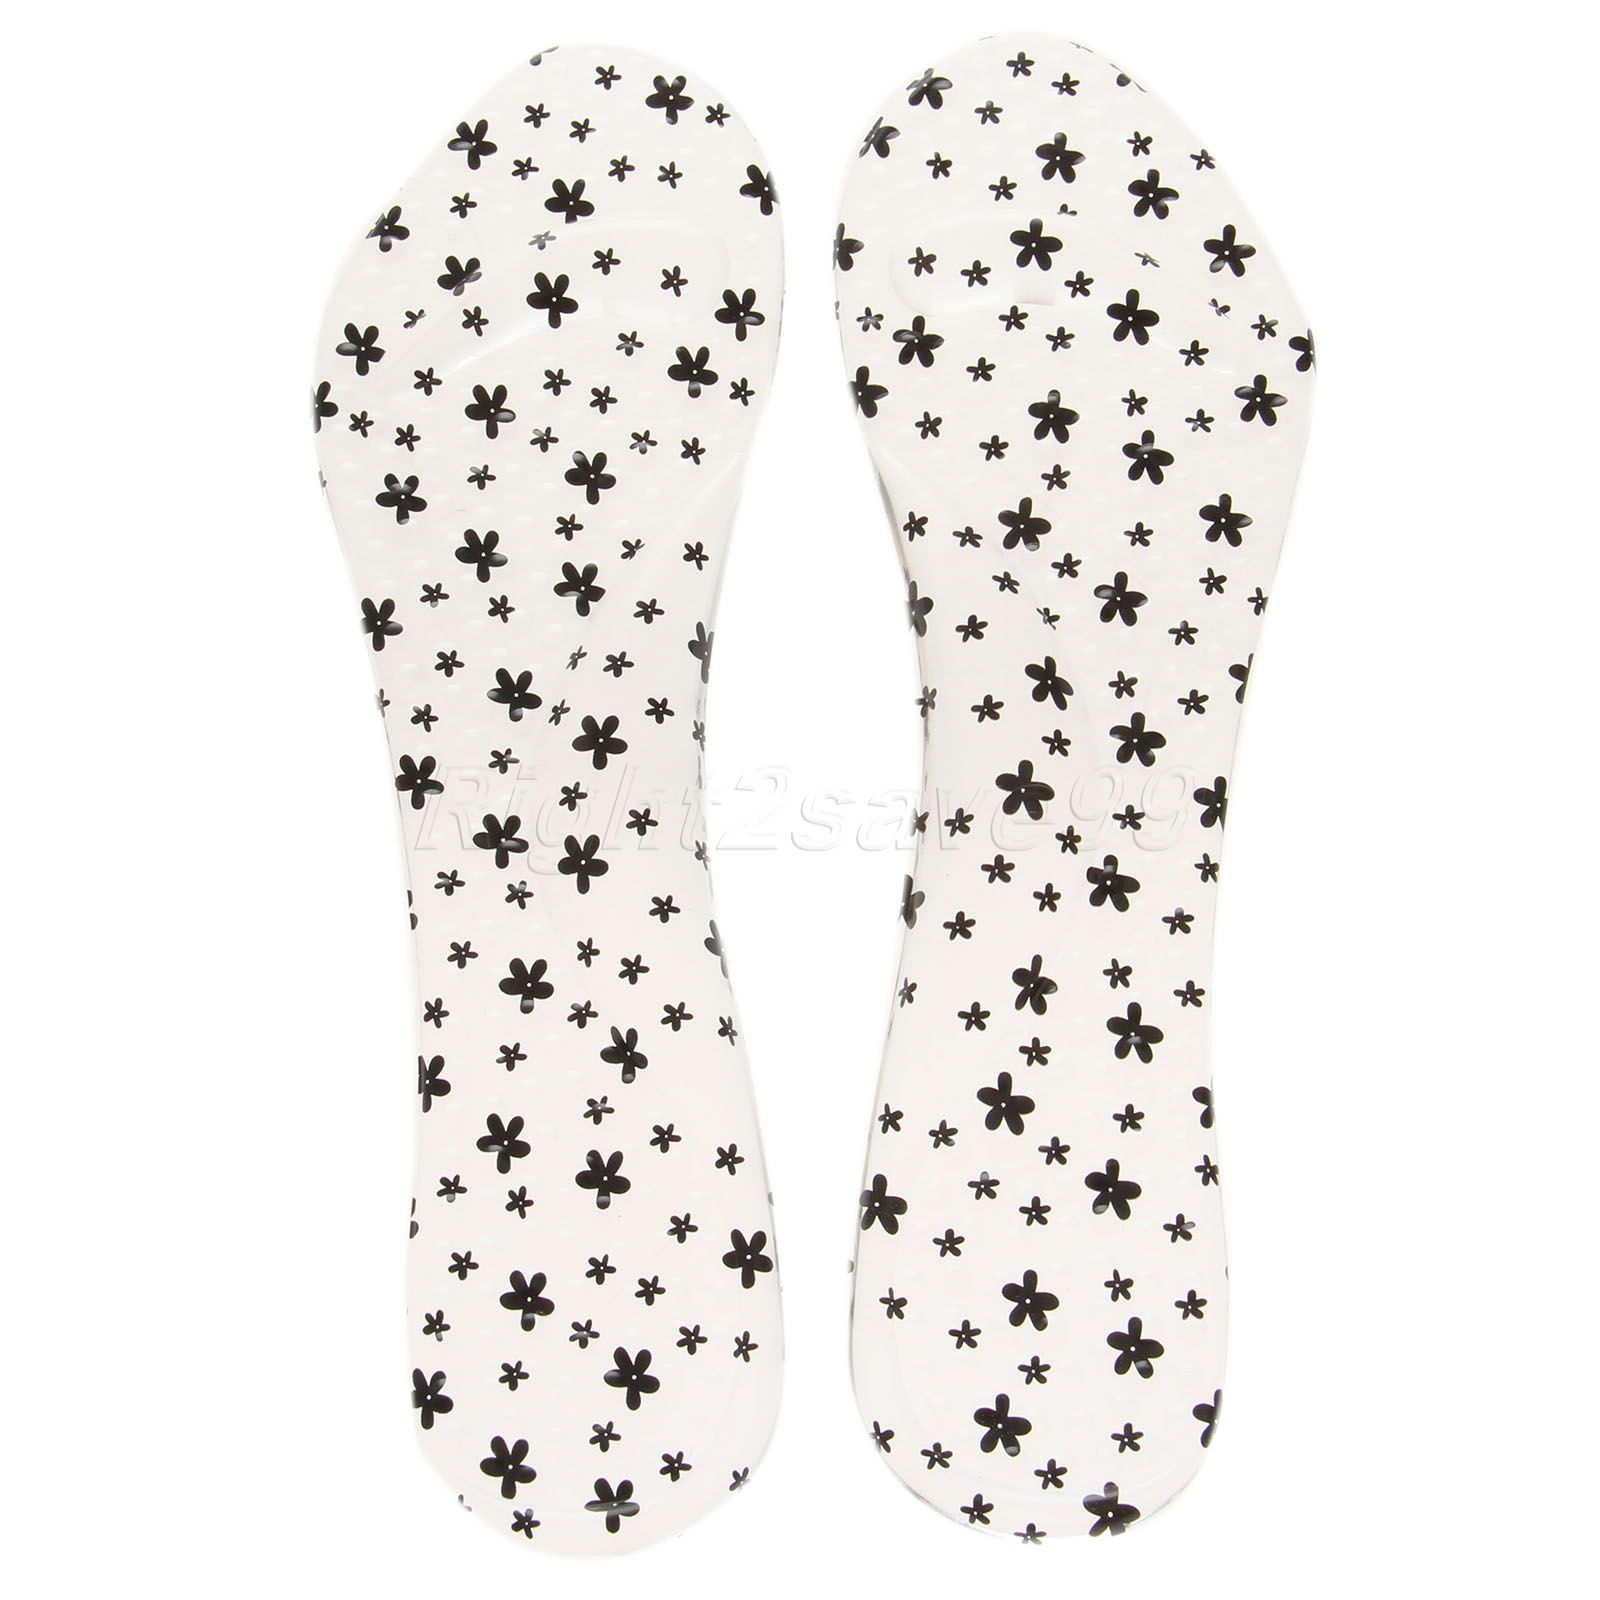 2017 High Quality1 Pair Plum Blossom Soft Foot Silicone Arch Support Heel Cushion Flat Feet Shoe Insole Massage Pad Feet Care